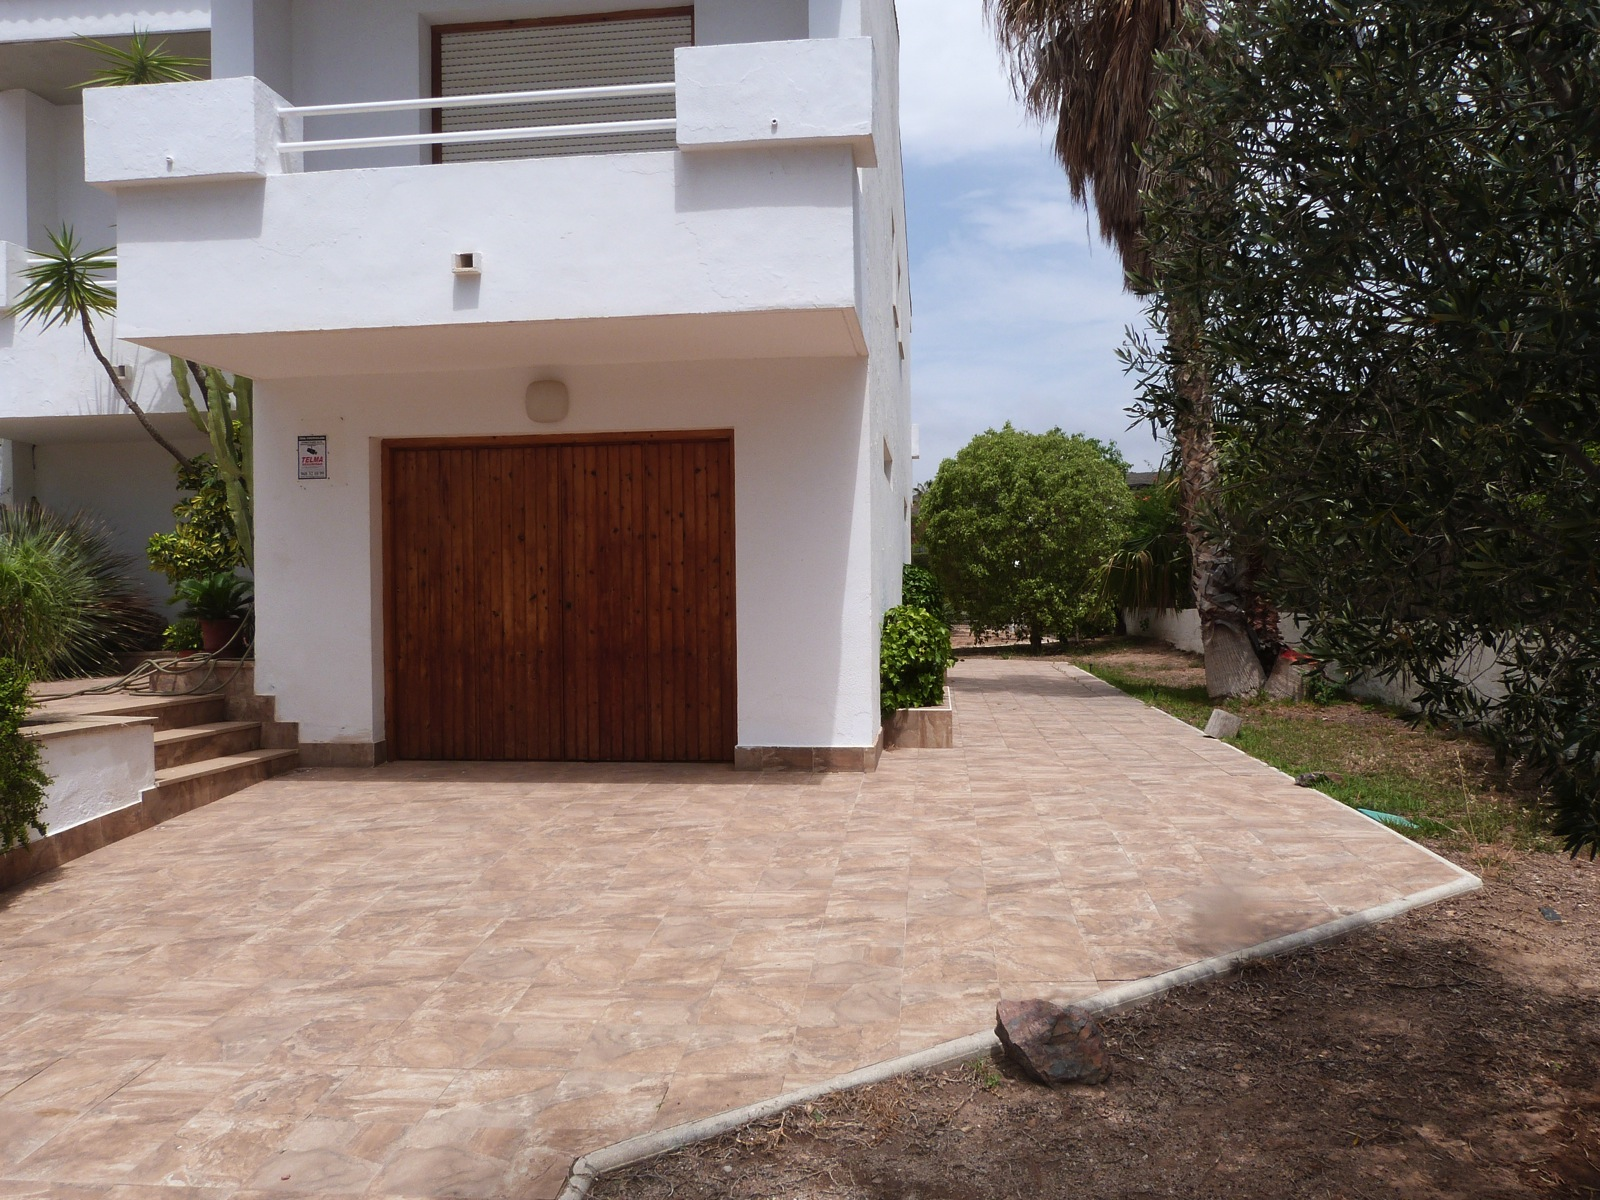 GRAND DELUX VILLA, ALL YOU NEED, 5 BEDS, 200m FROM THE BEACH